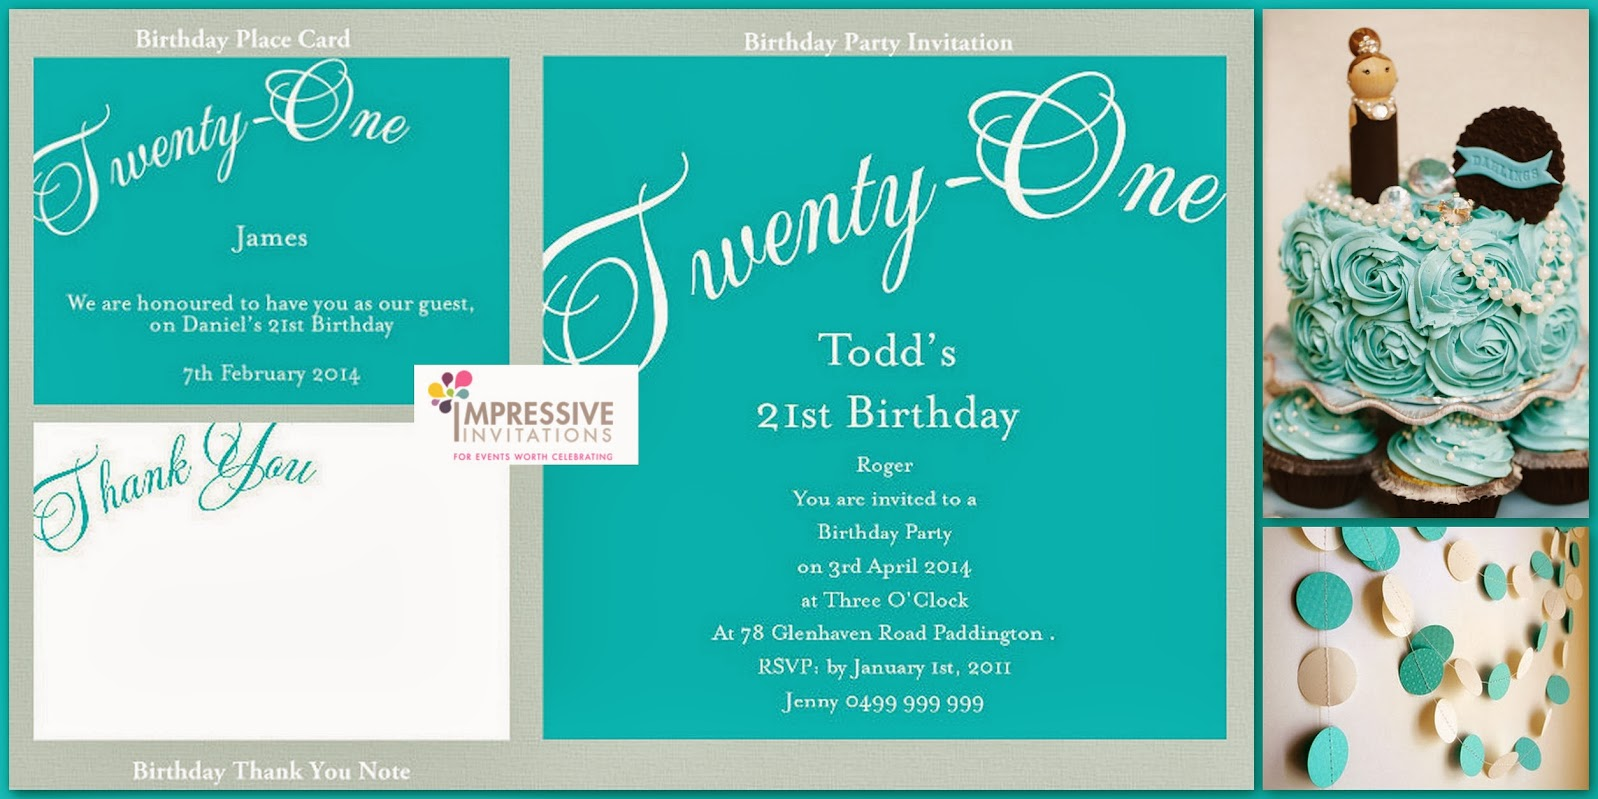 21st Birthday Invitations and Traditions / Invitations Ideas